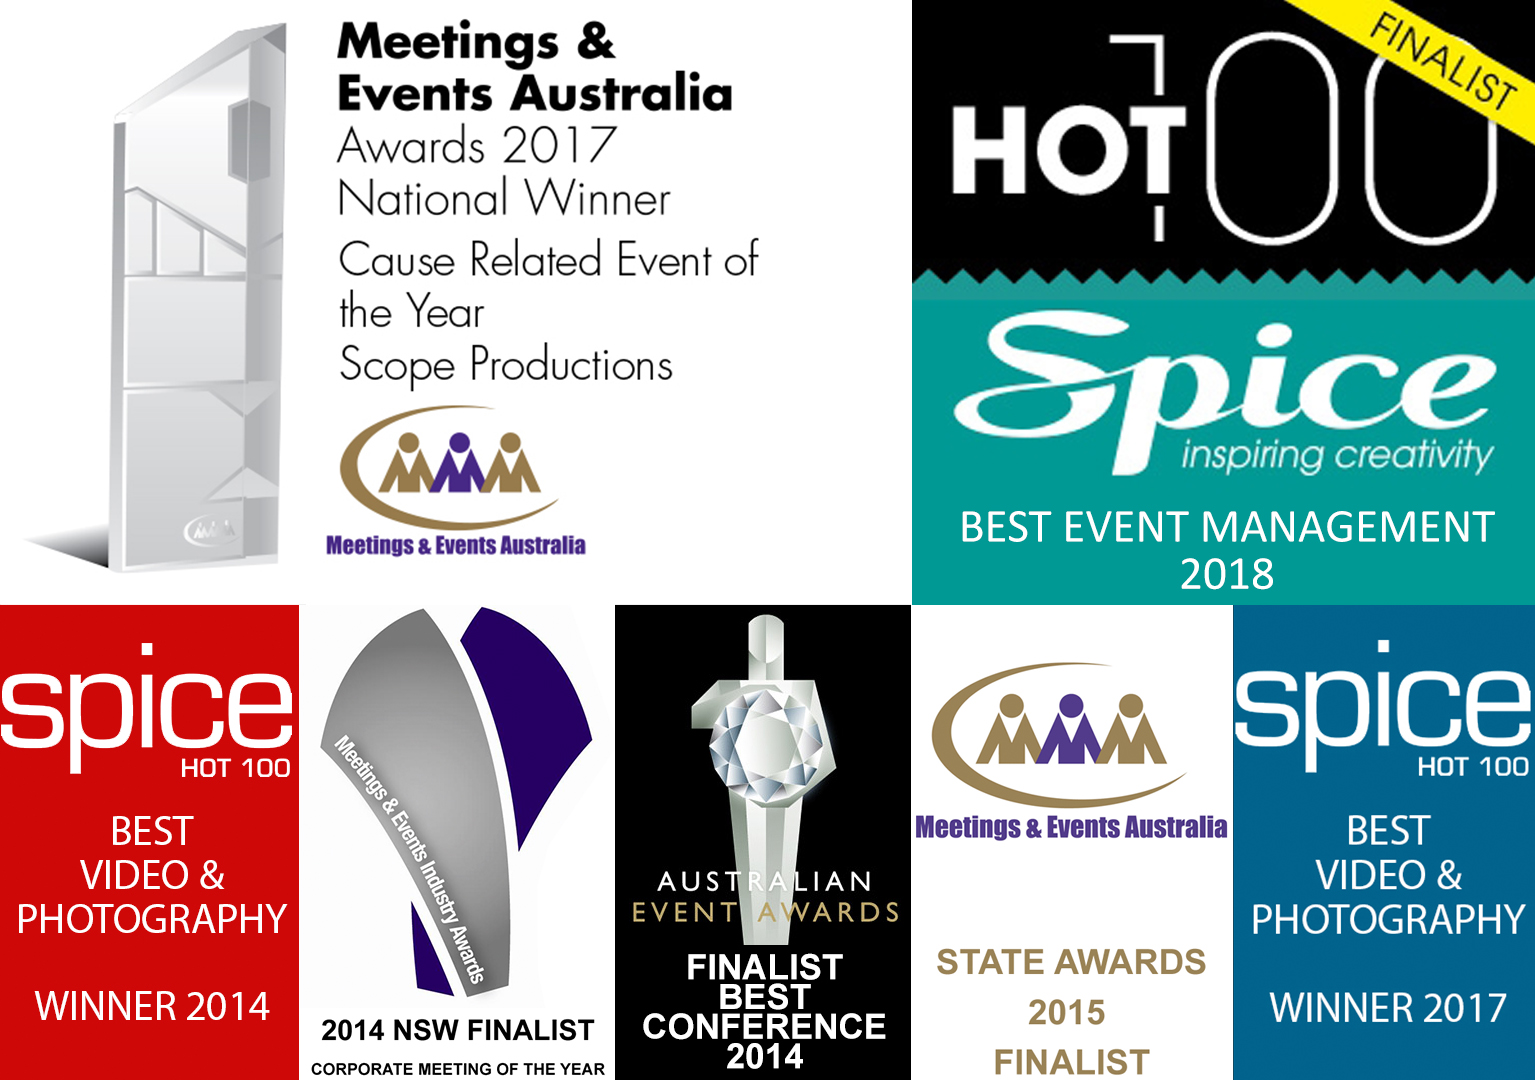 Awards Received By Scope Productions